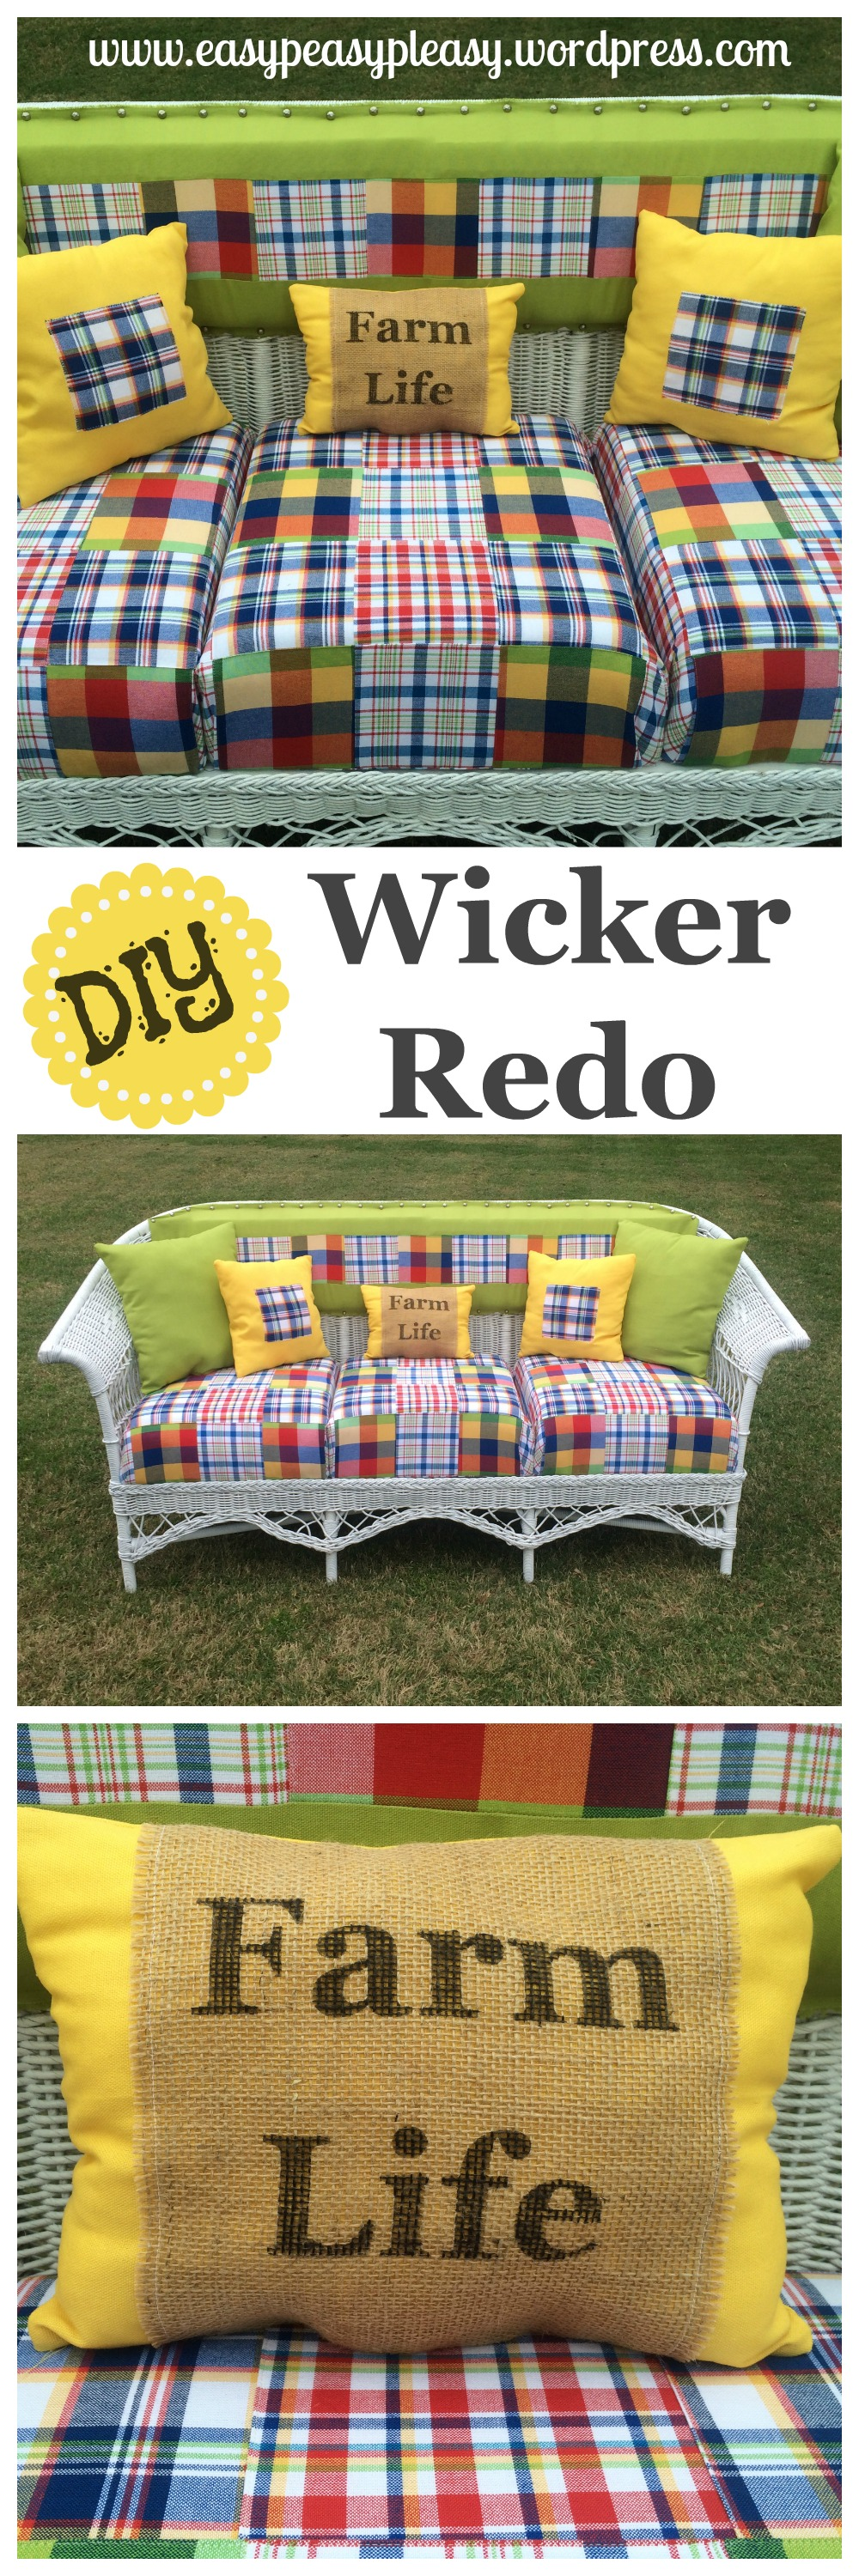 How to restore wicker DIY tutorial